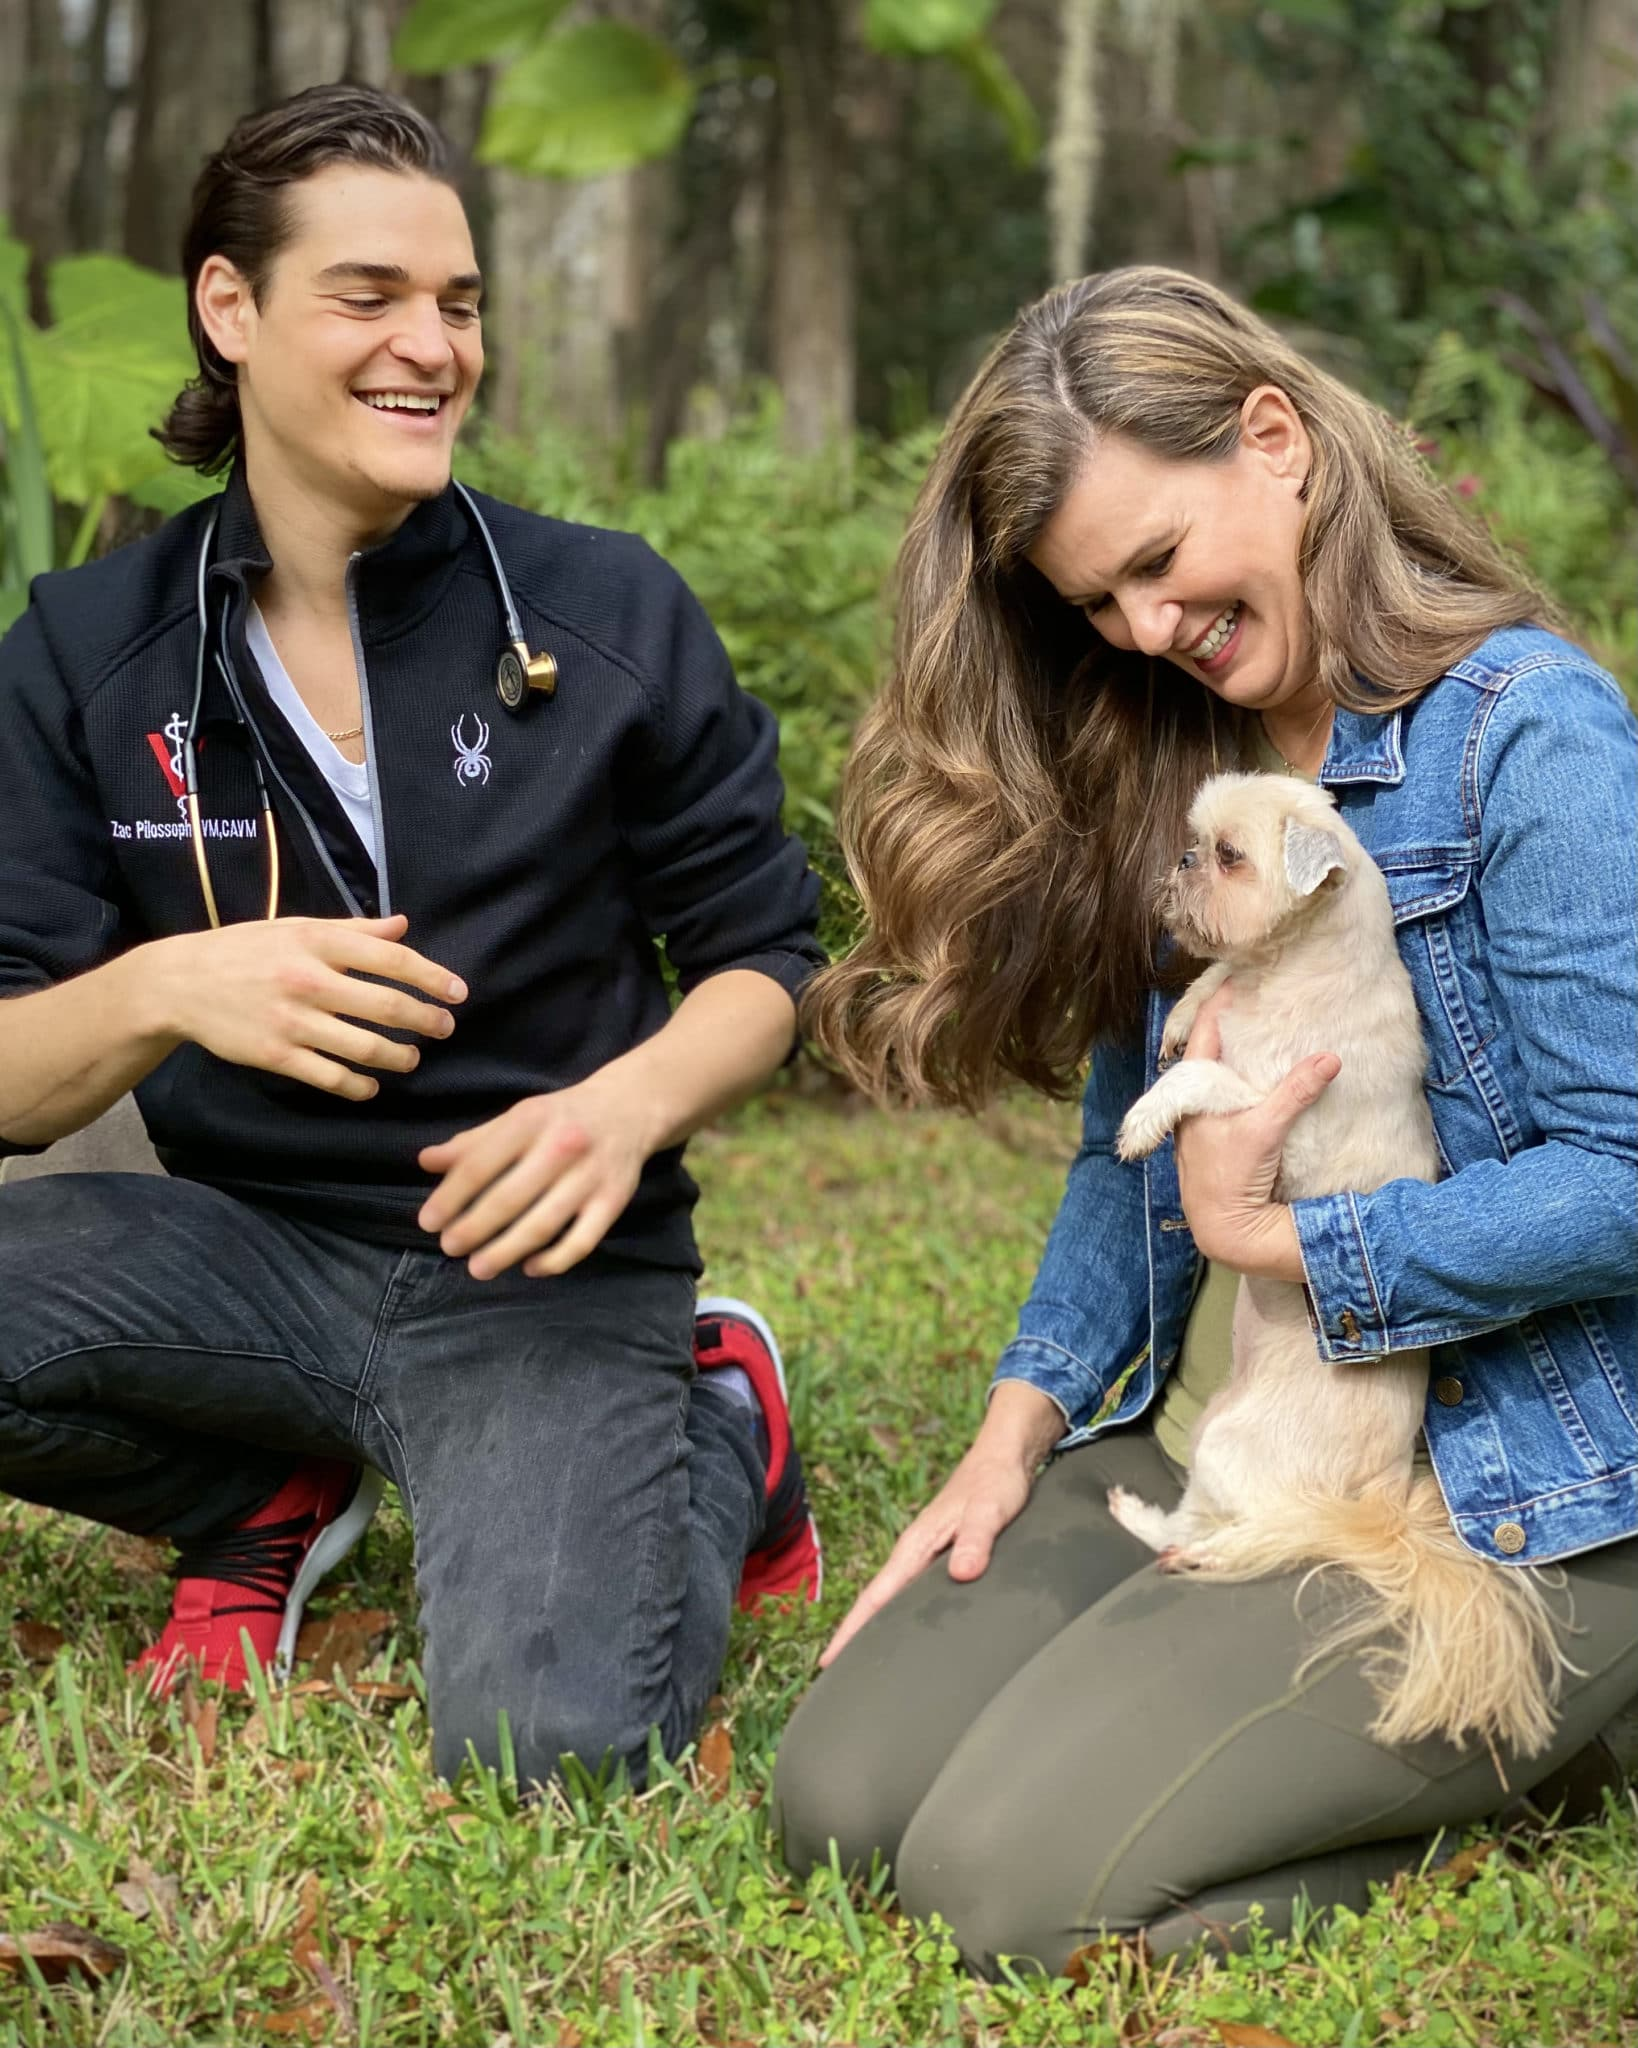 Dr. Zac and Angie